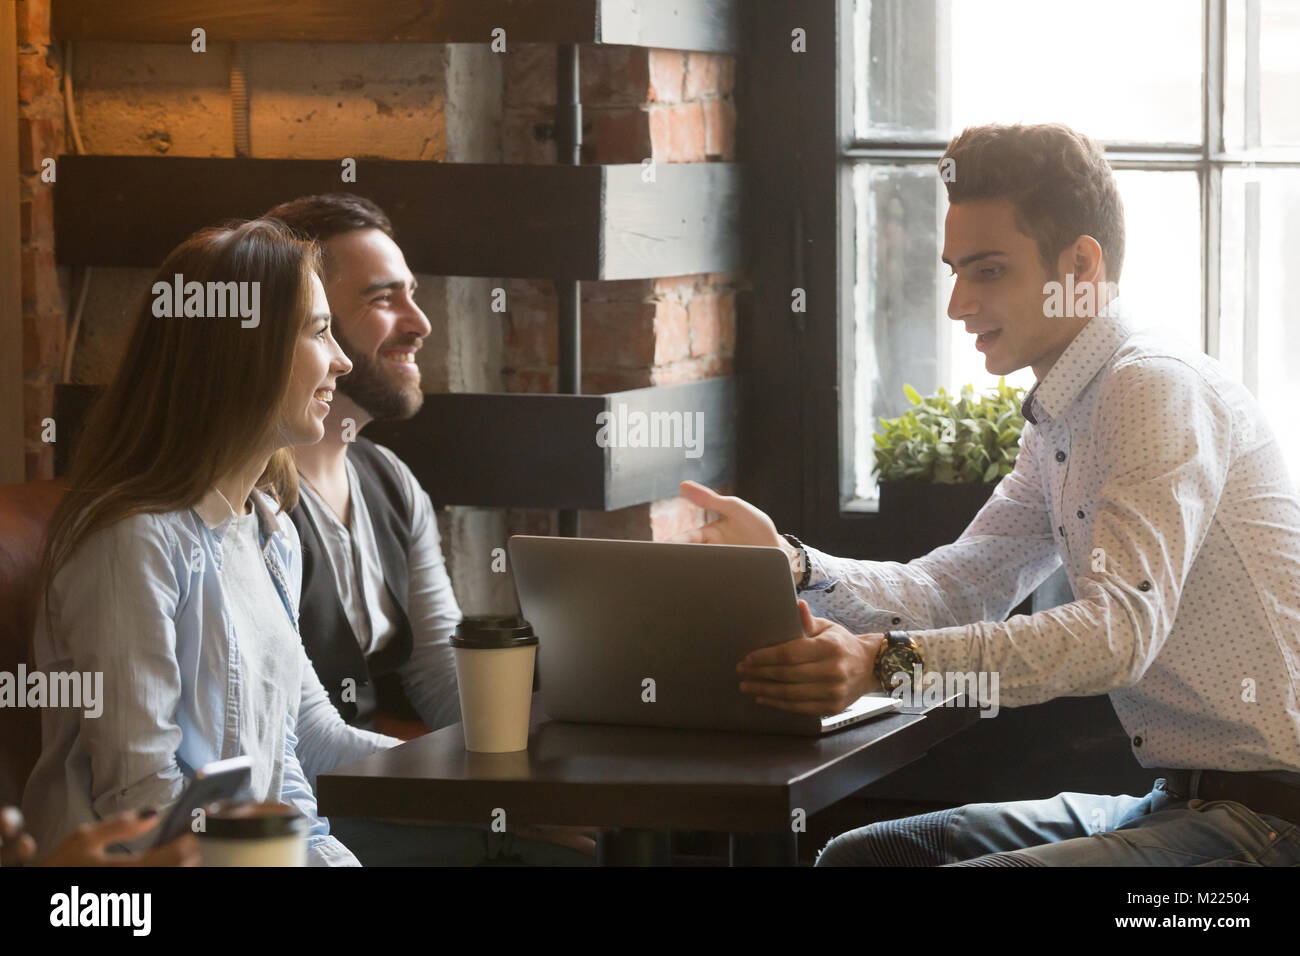 Insurance broker or salesman making offer to couple in cafe - Stock Image